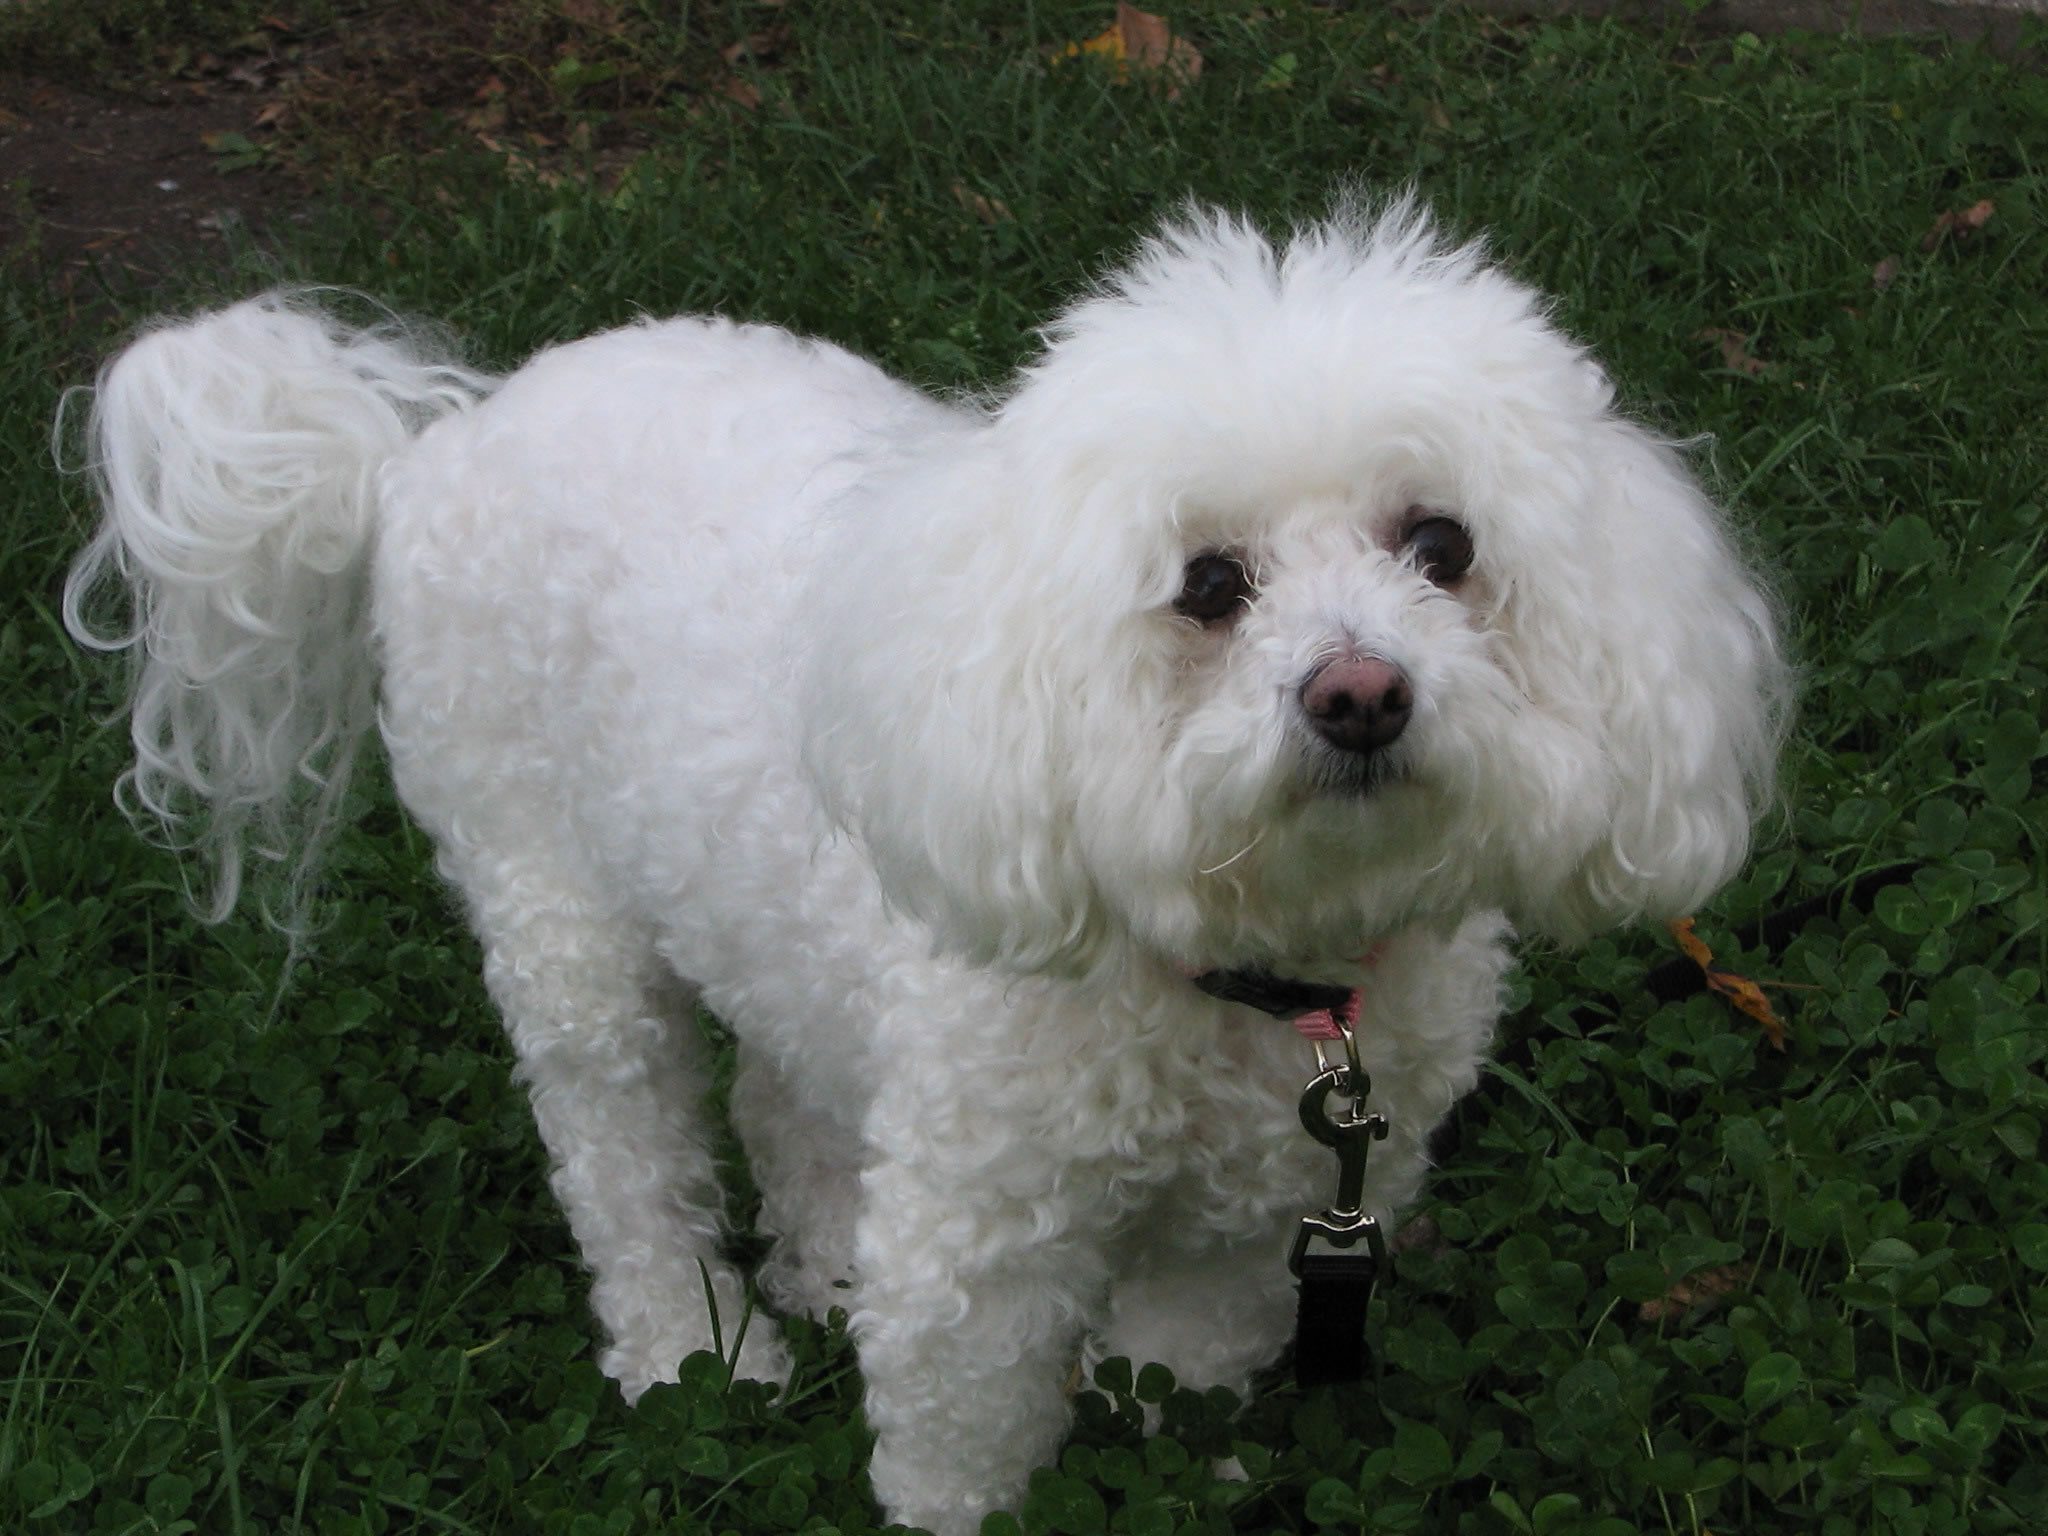 Bichon Frise - My Doggy Rocks